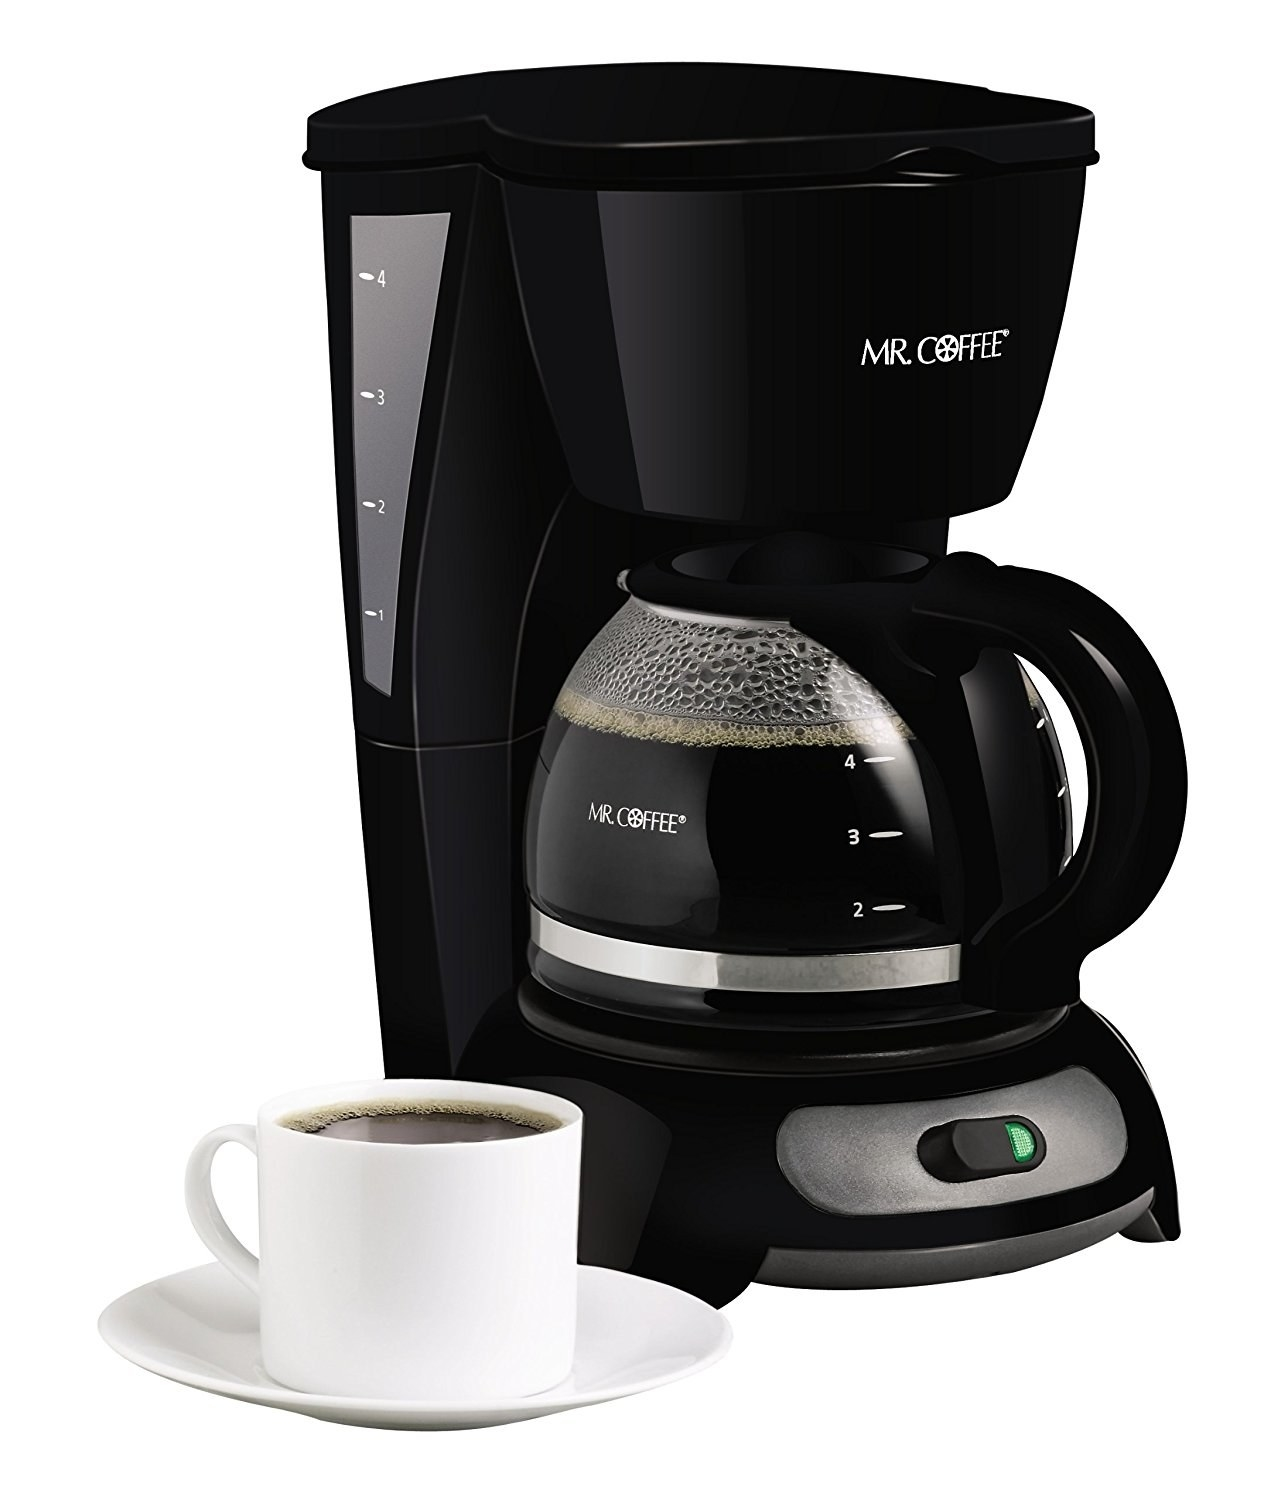 Coffee Maker Made Me Sick : 25 Deals On Useful Products That Every Responsible Adult Should Own